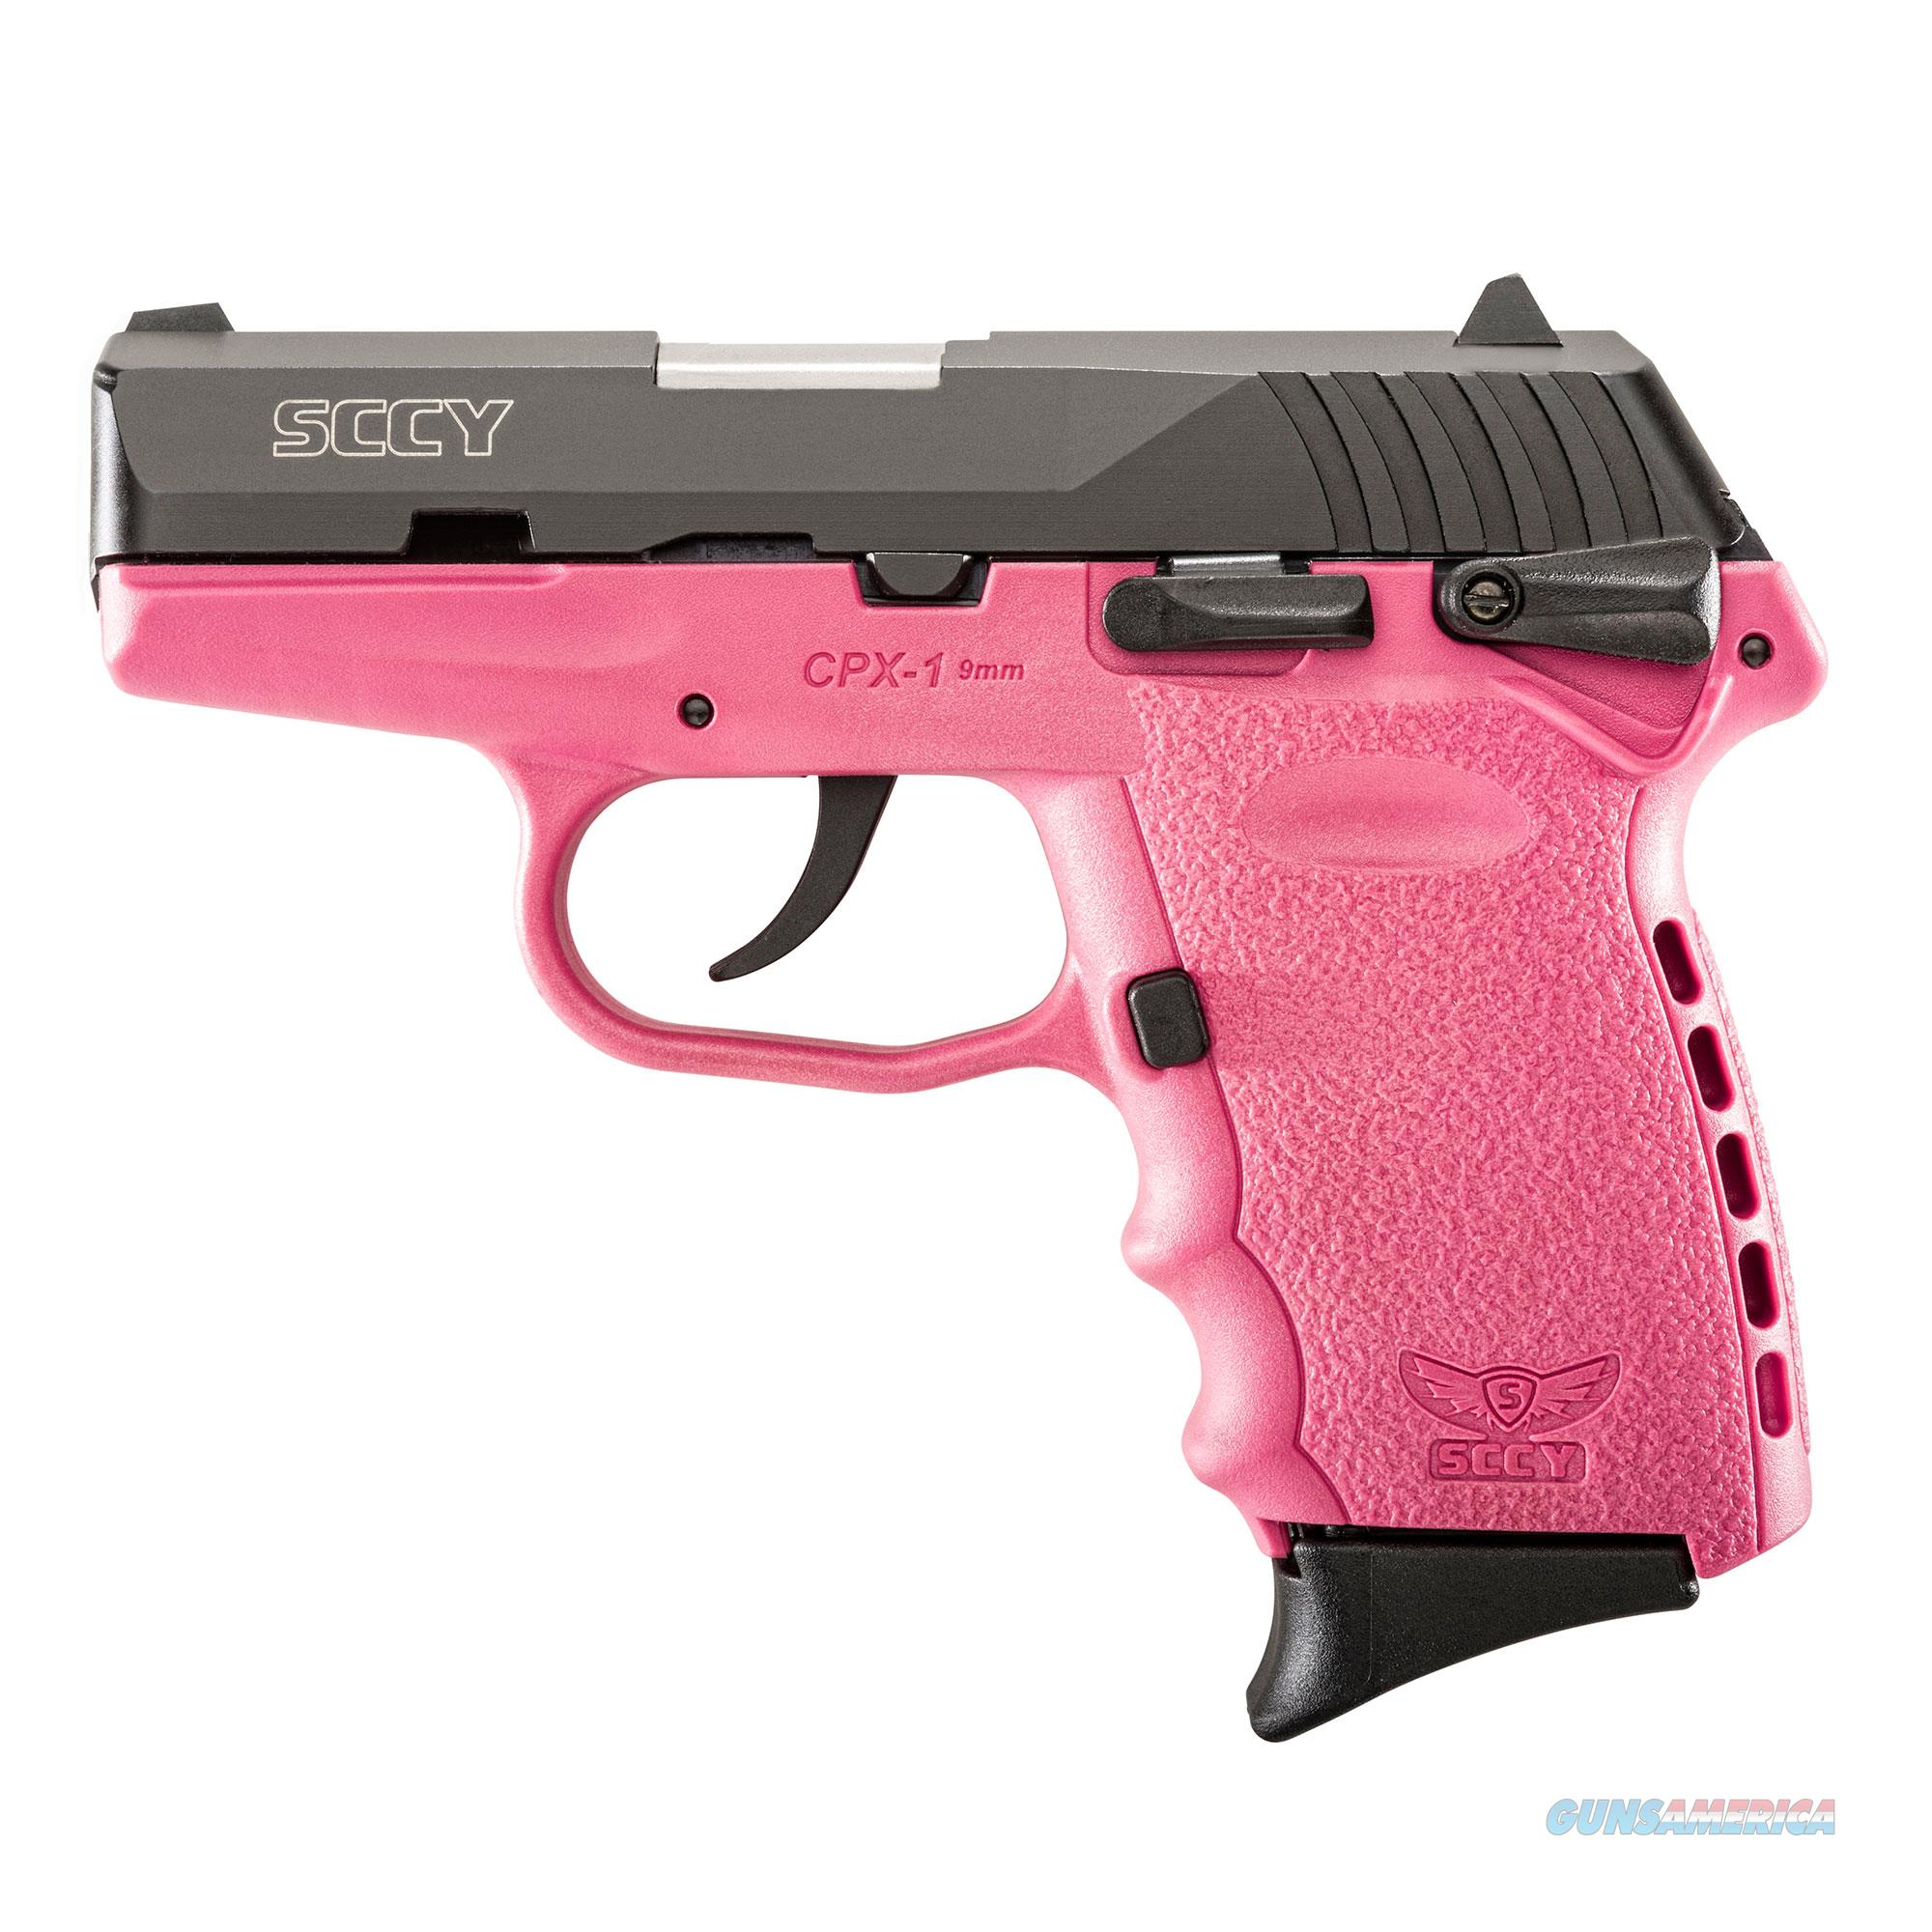 Scotts Auto Sales >> SCCY CPX-1 9MM MATTE / PINK 10+1 CAPACITY NEW I... for sale